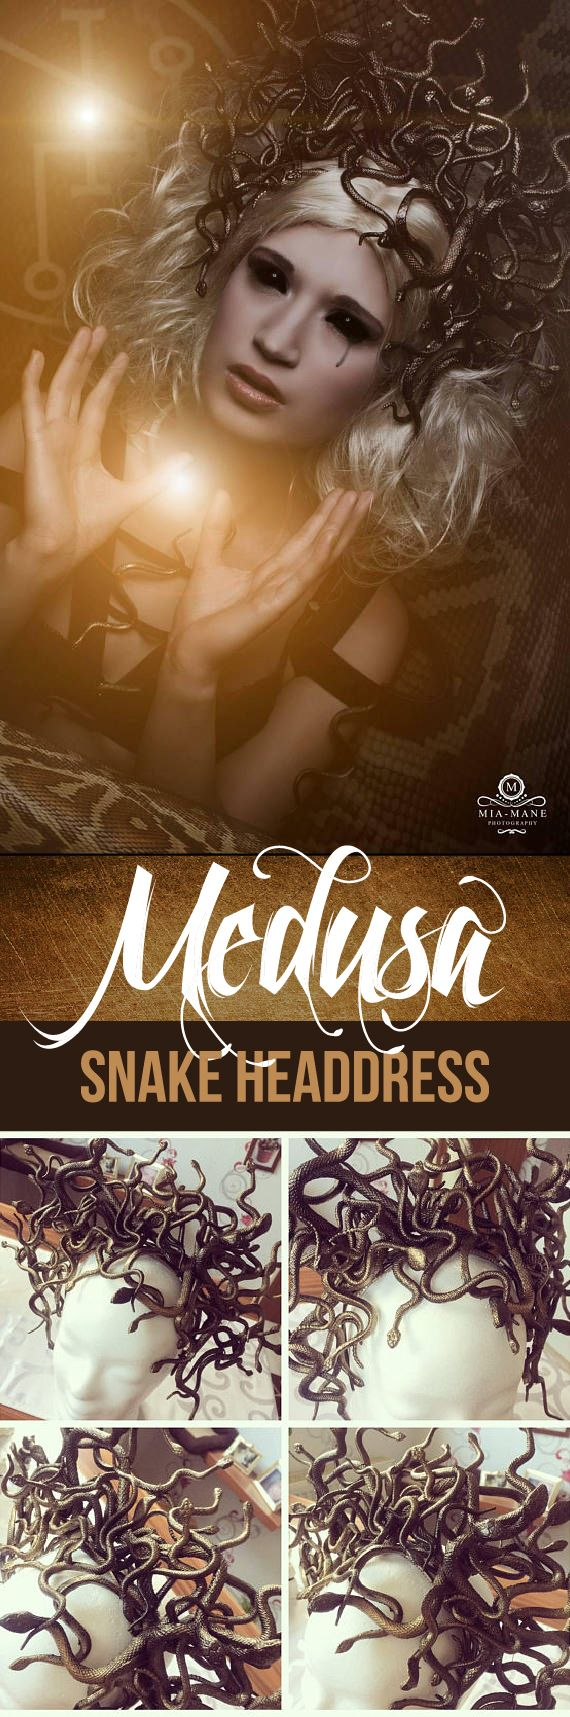 This headpiece is just stunning.  I love the bronzish colour and the individual snakes are interwoven so artistically. This is a must have to take any Medusa costume to the next level. #medusa #costume #headdress #fantasy #mythology #affiliate